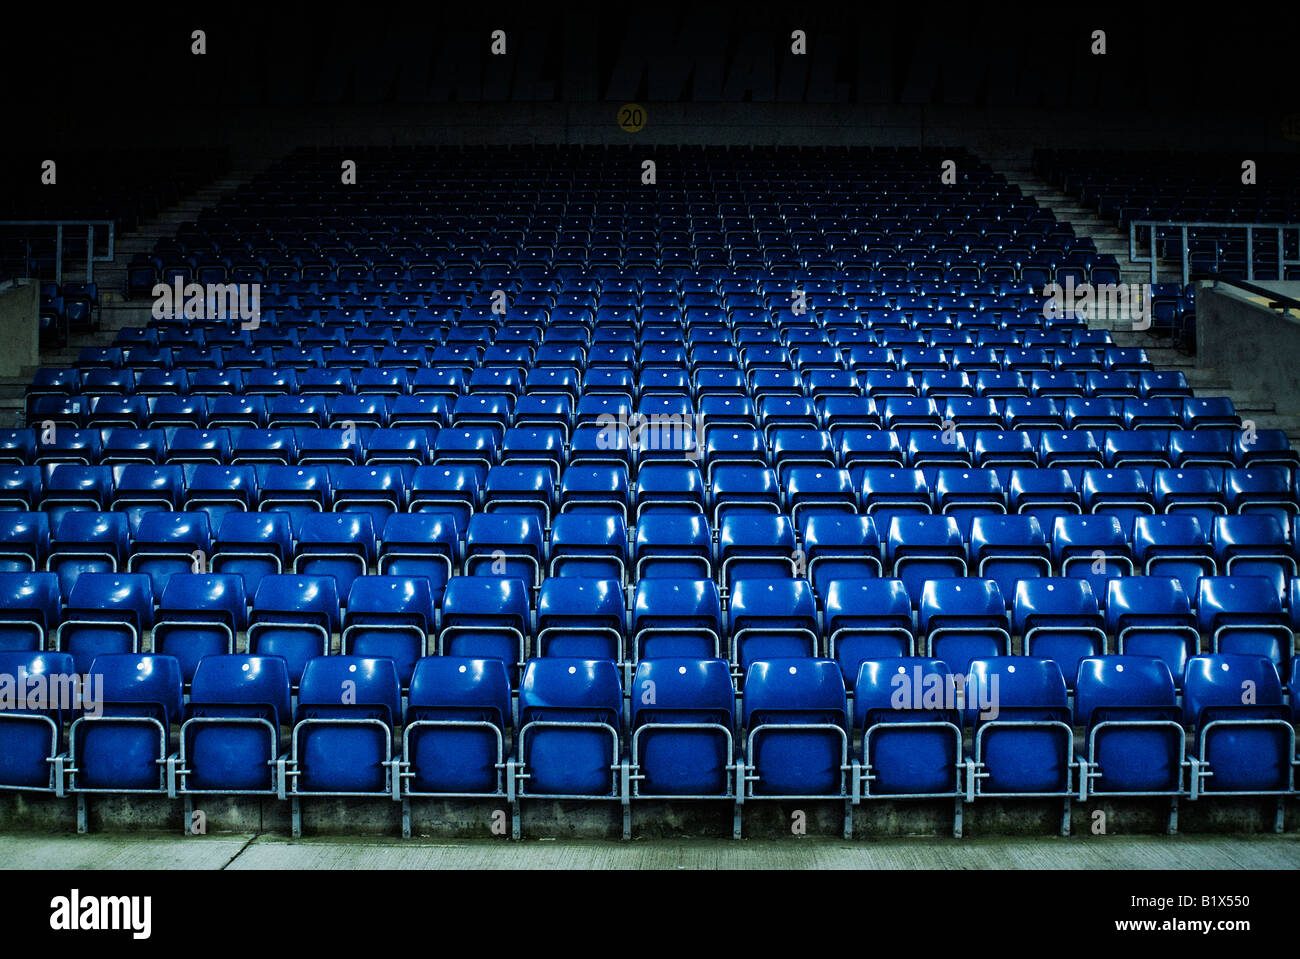 Oxford United Football Club seating stand - Stock Image